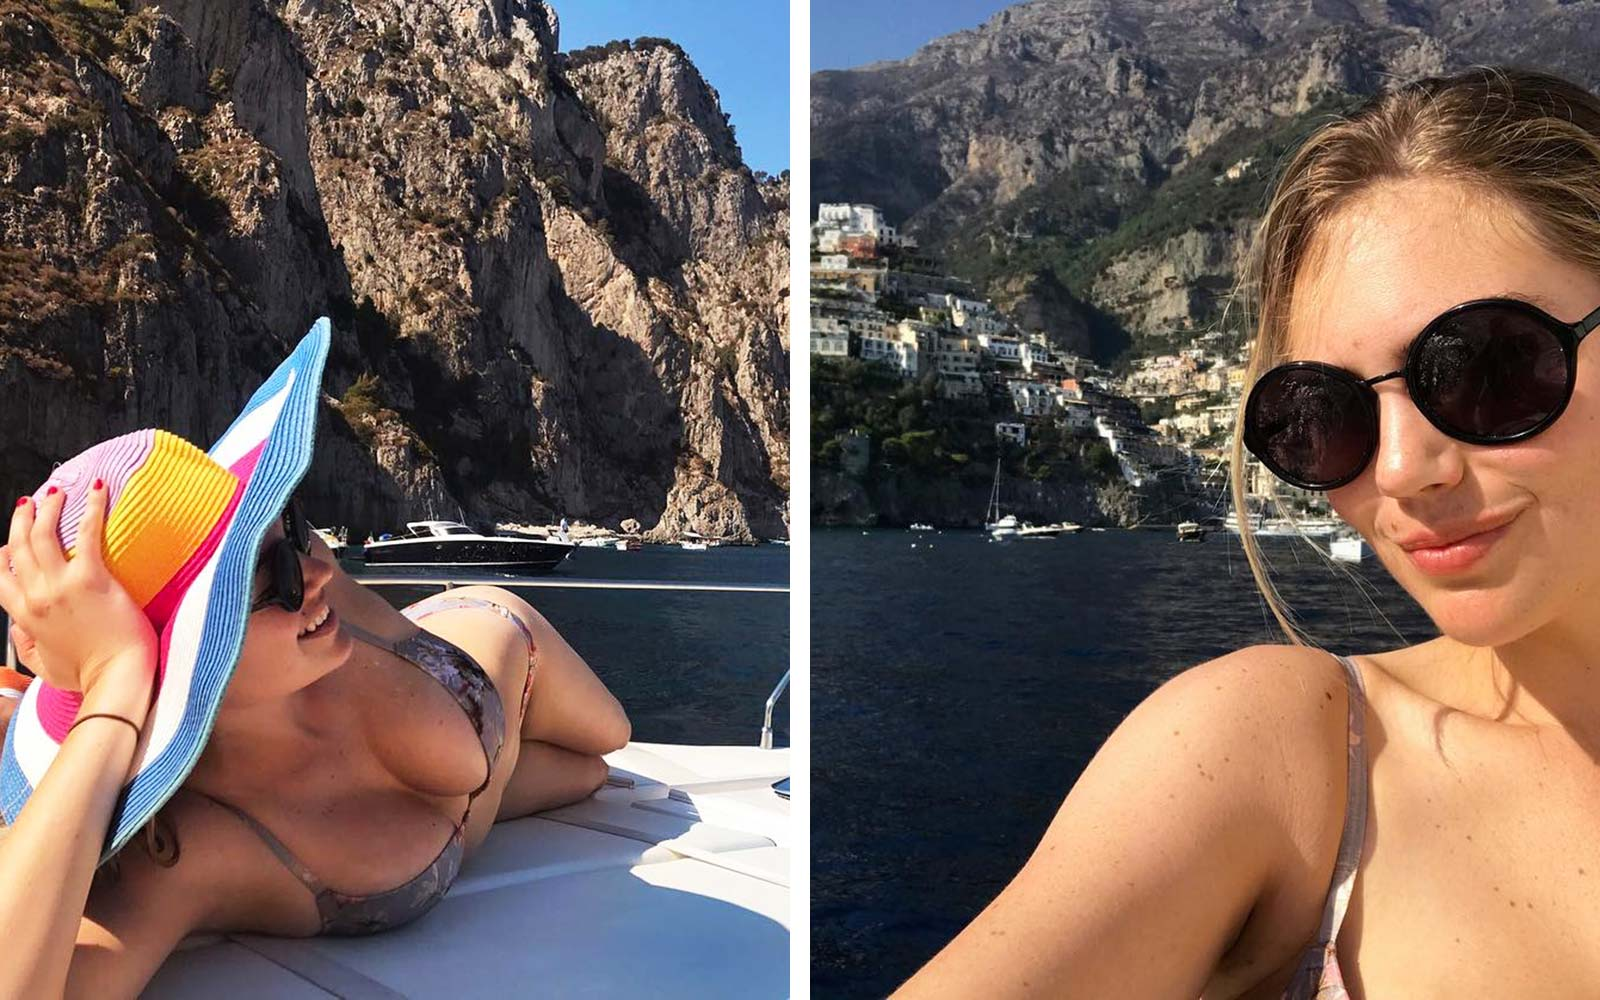 How to Spot Celebrities Like Kate Upton in Capri